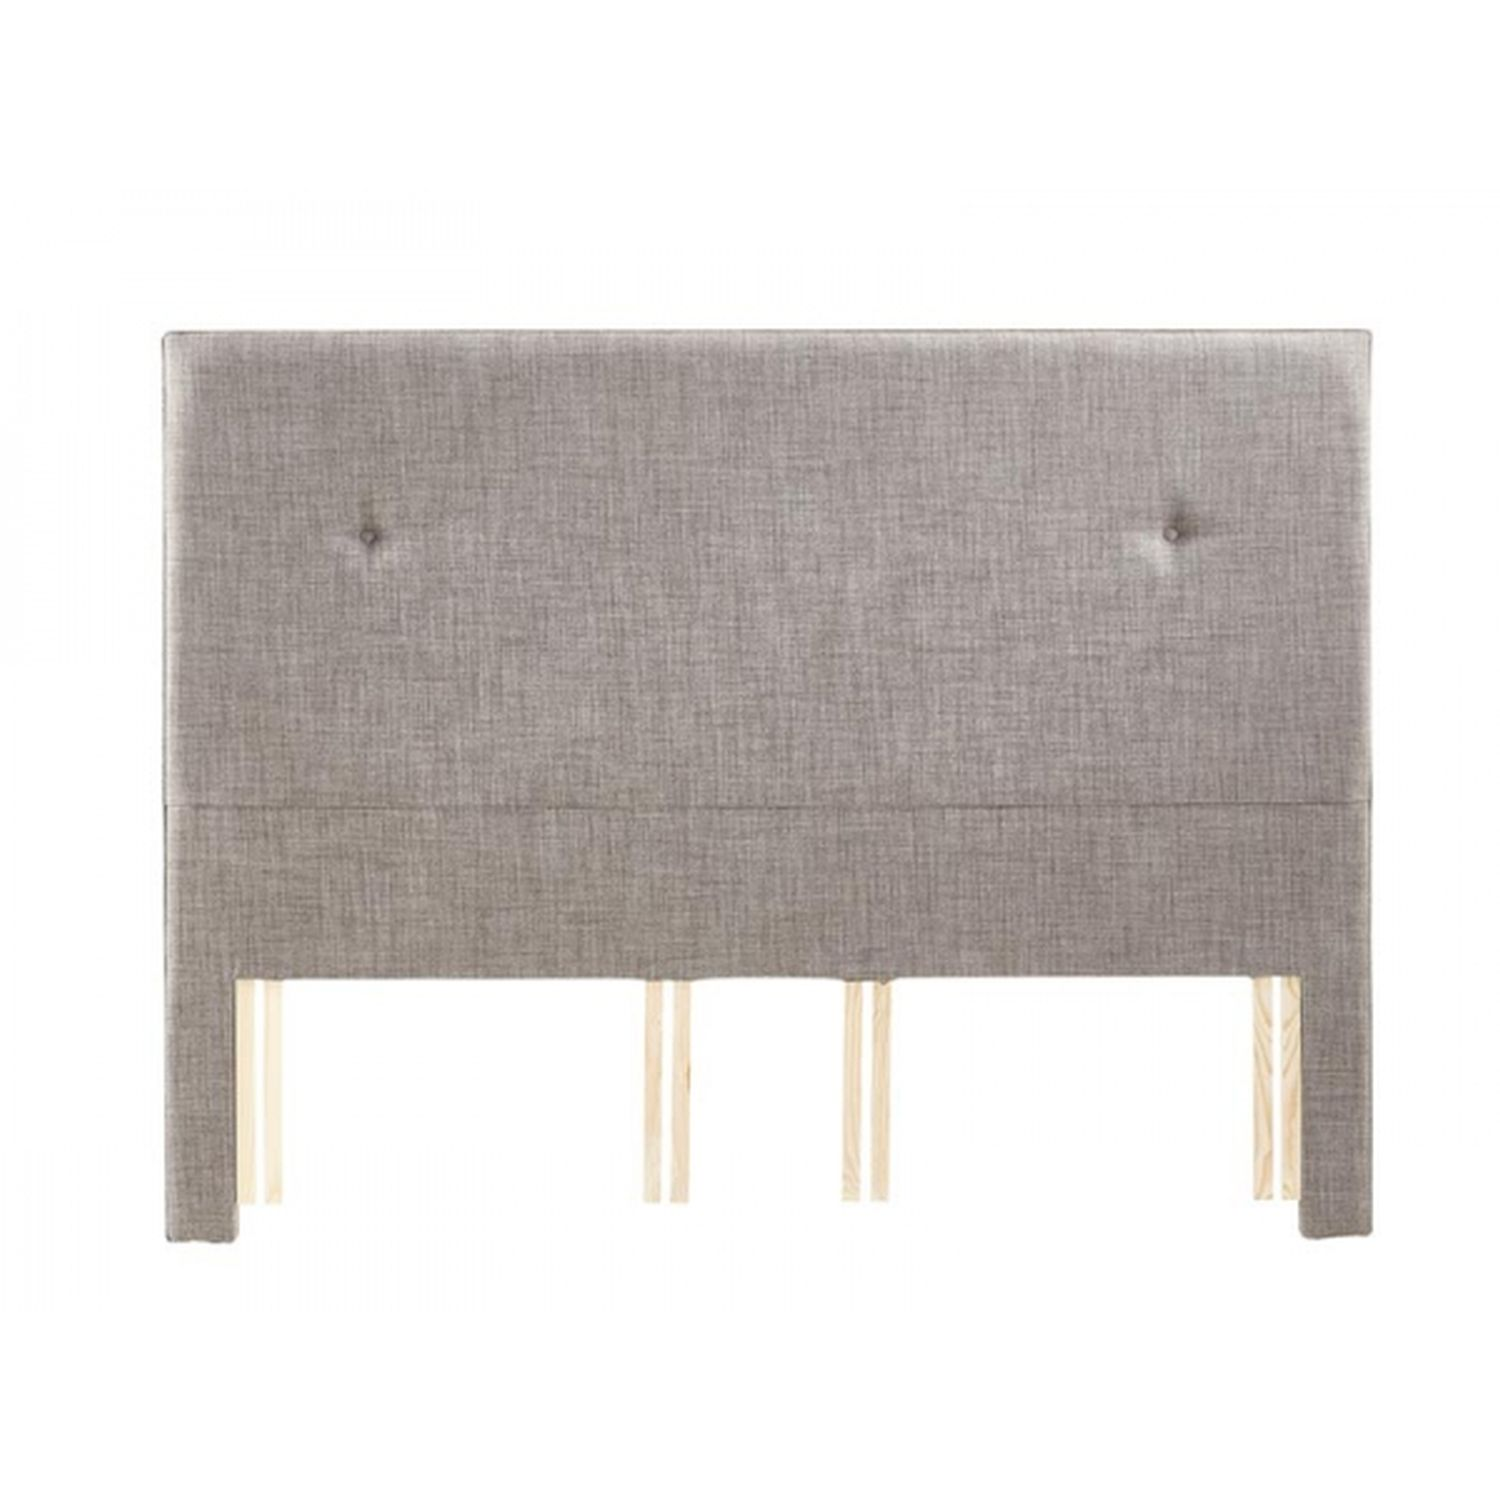 Image of Lindal Slim Headboard, Small Double